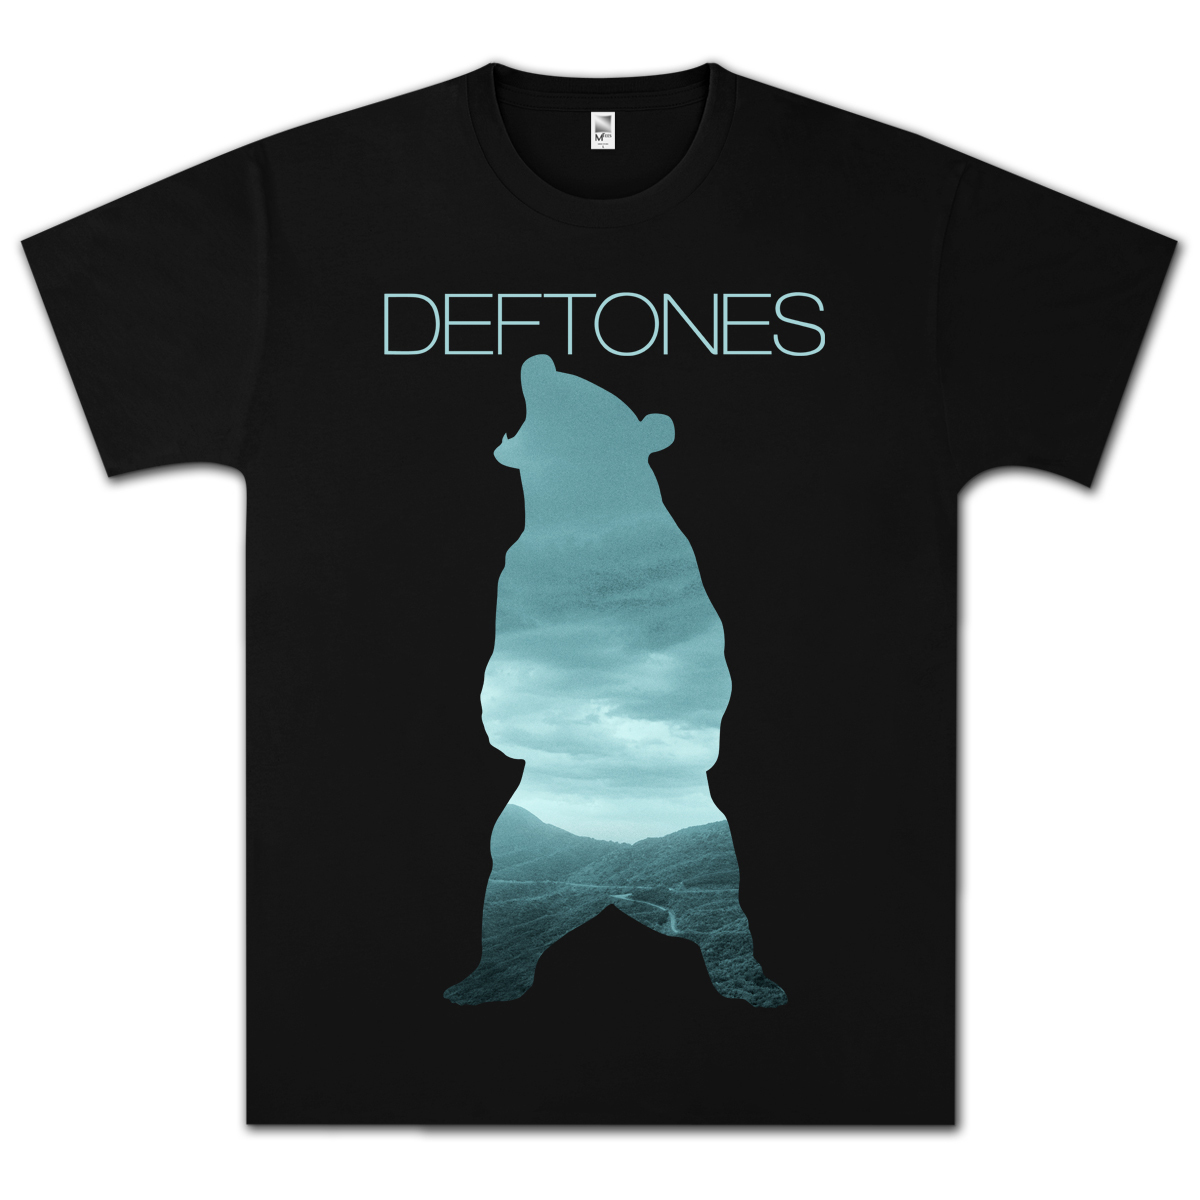 Deftones Teddy Black T-Shirt